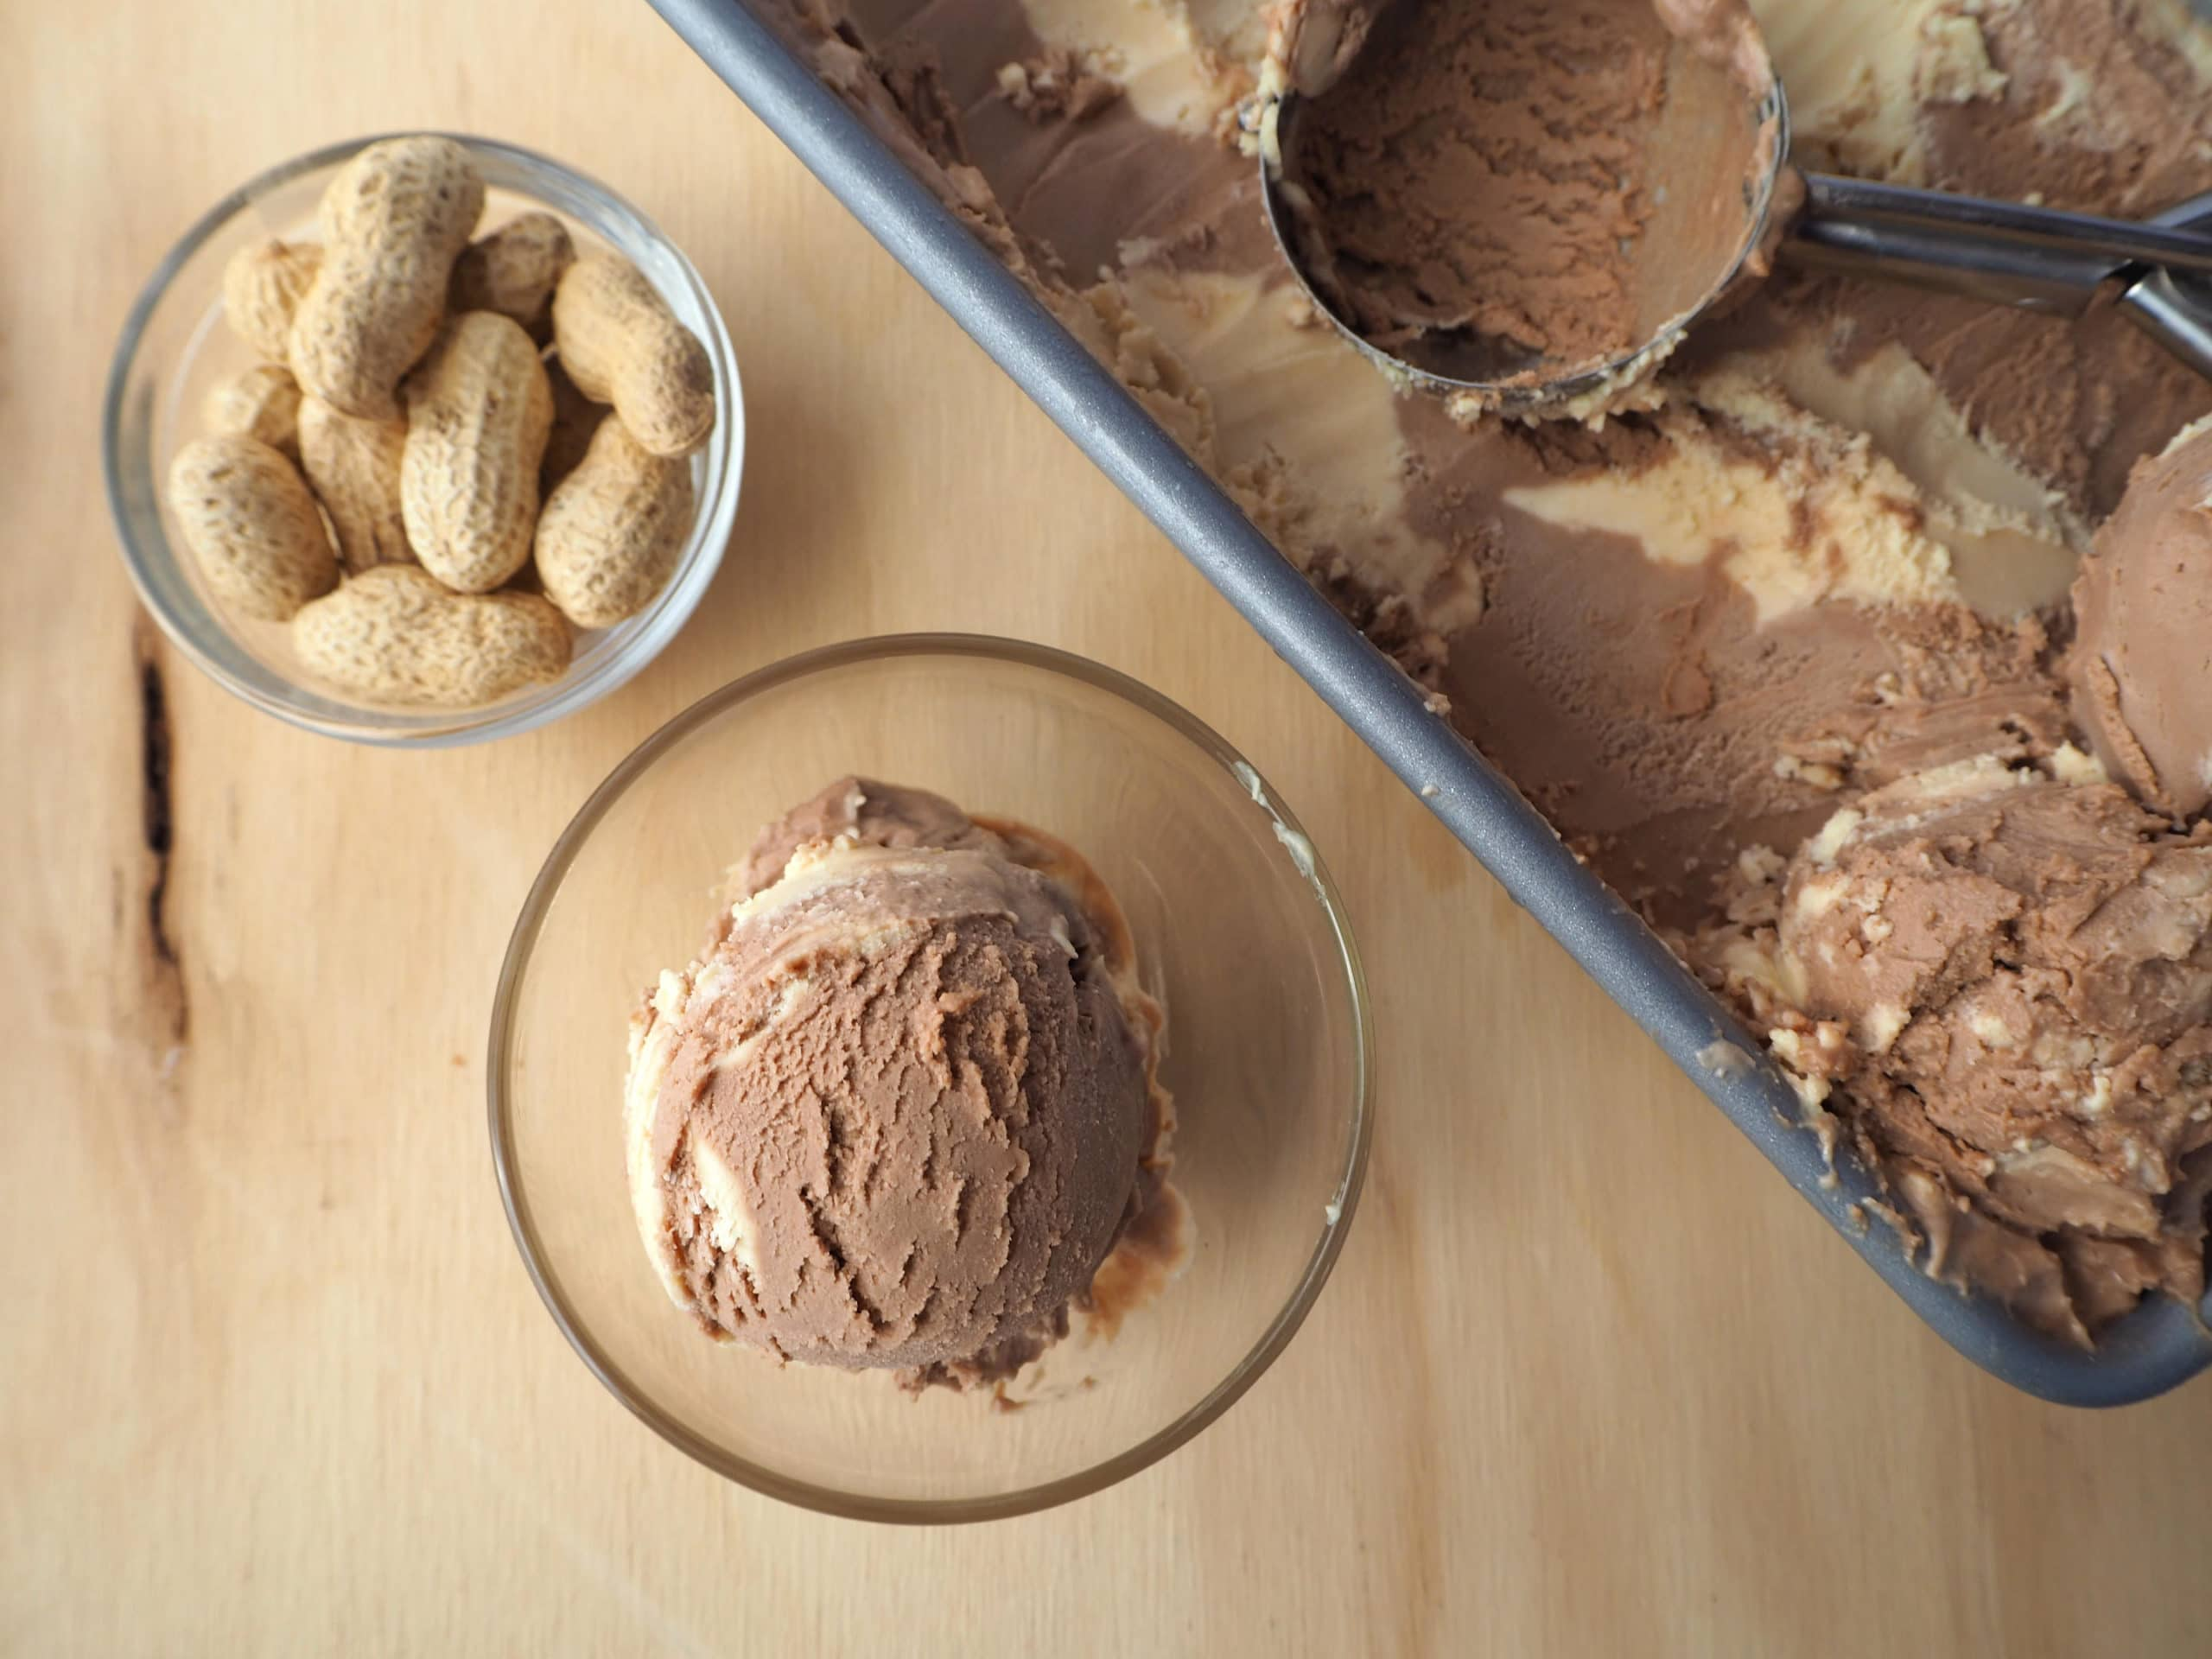 Nutella peanut butter ice cream with pan